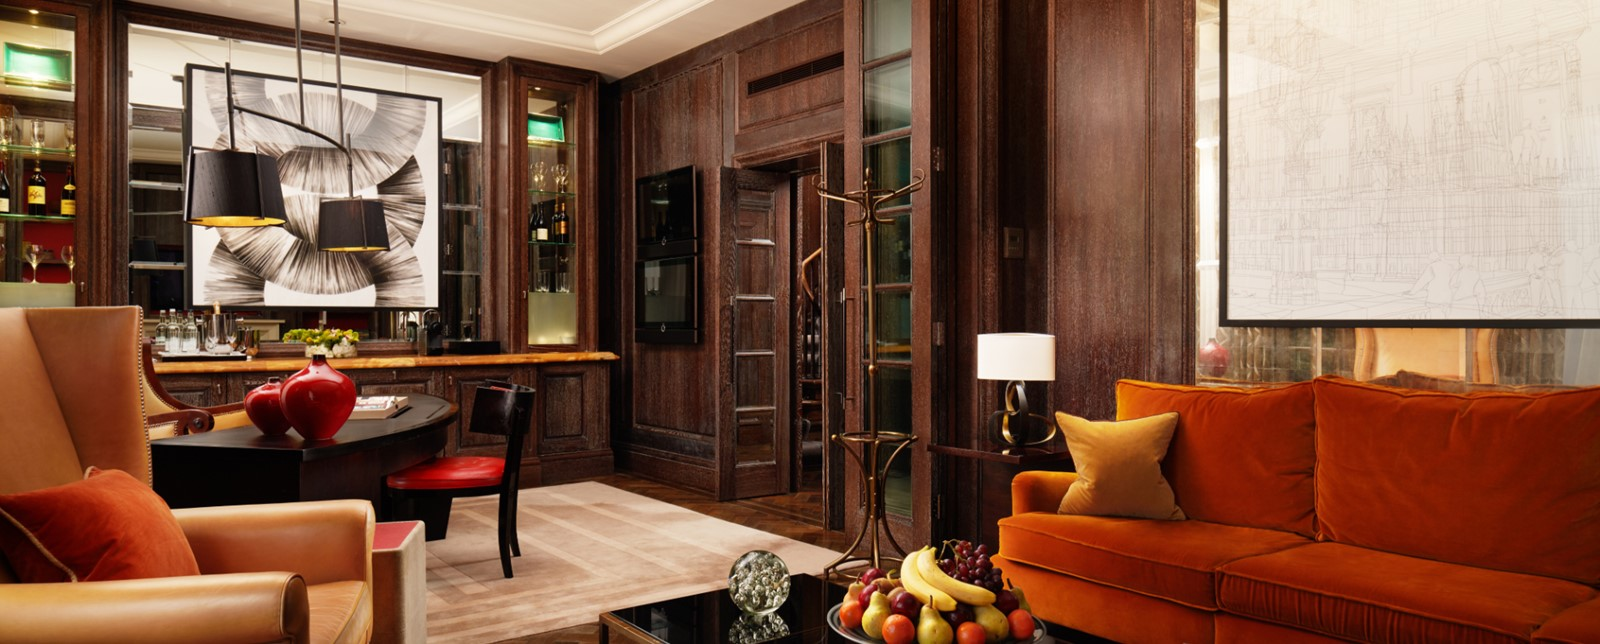 corinthia london whitehall penthouse